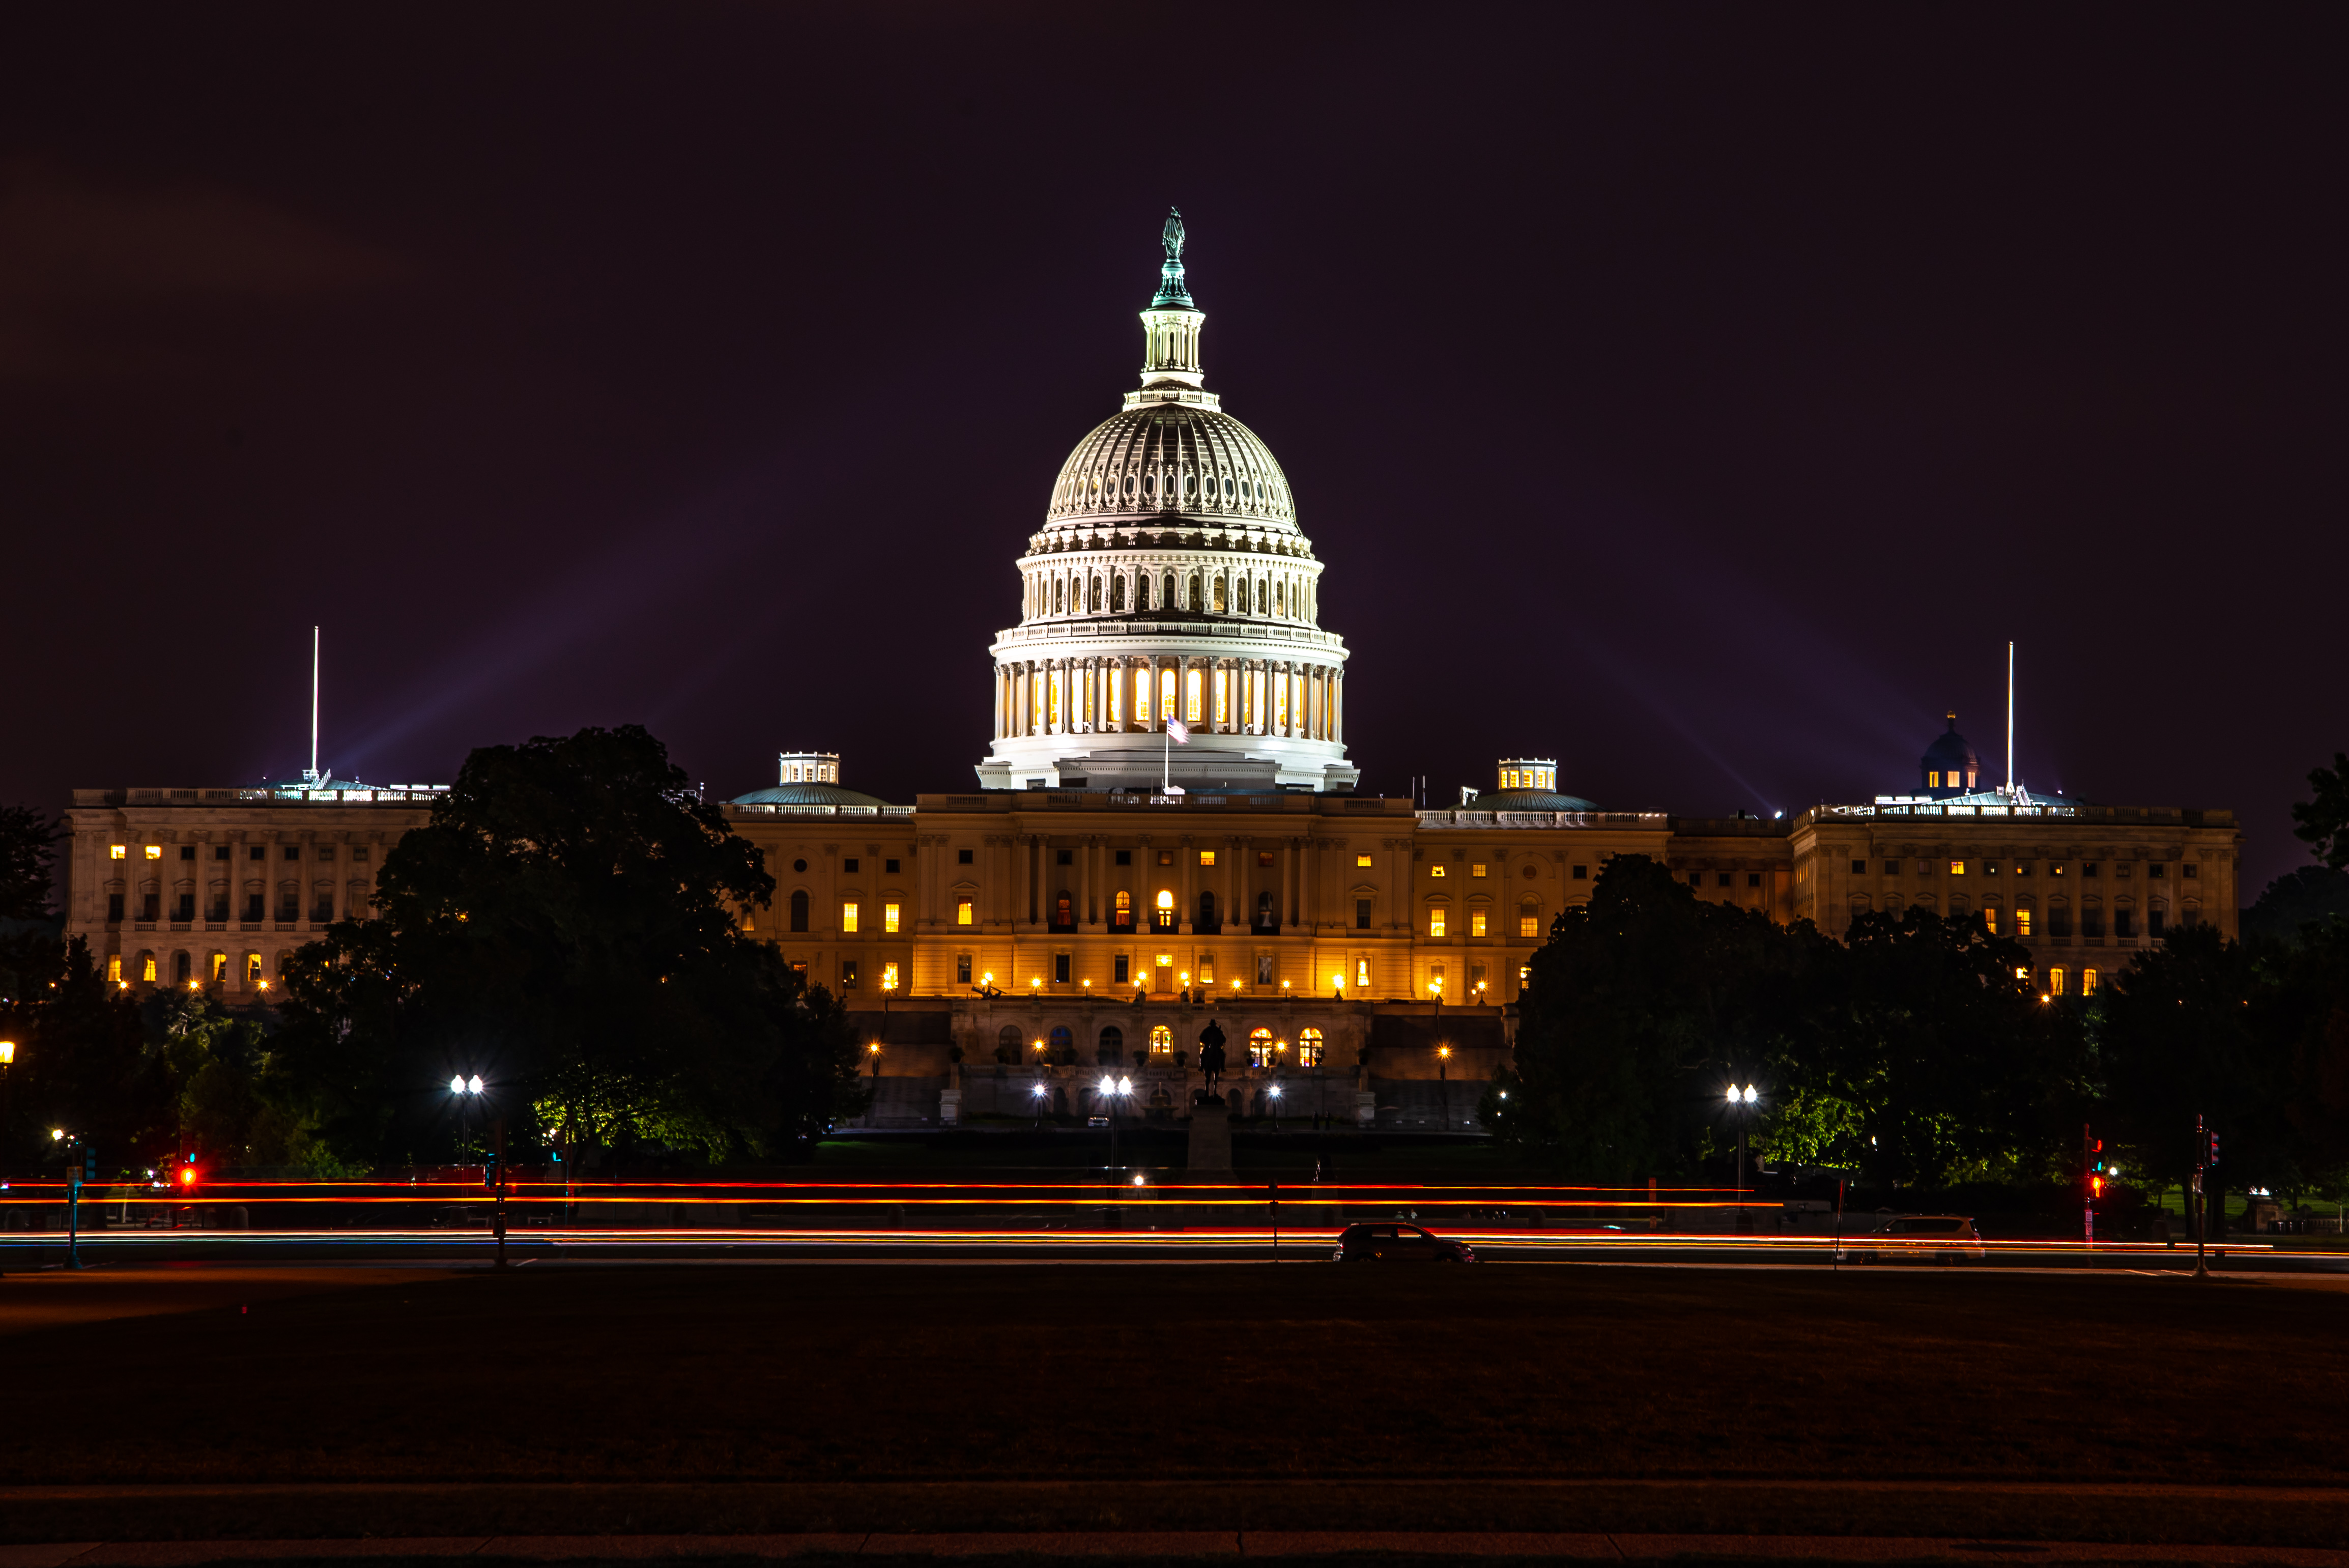 united_states_capitol_building_at_night.jpg